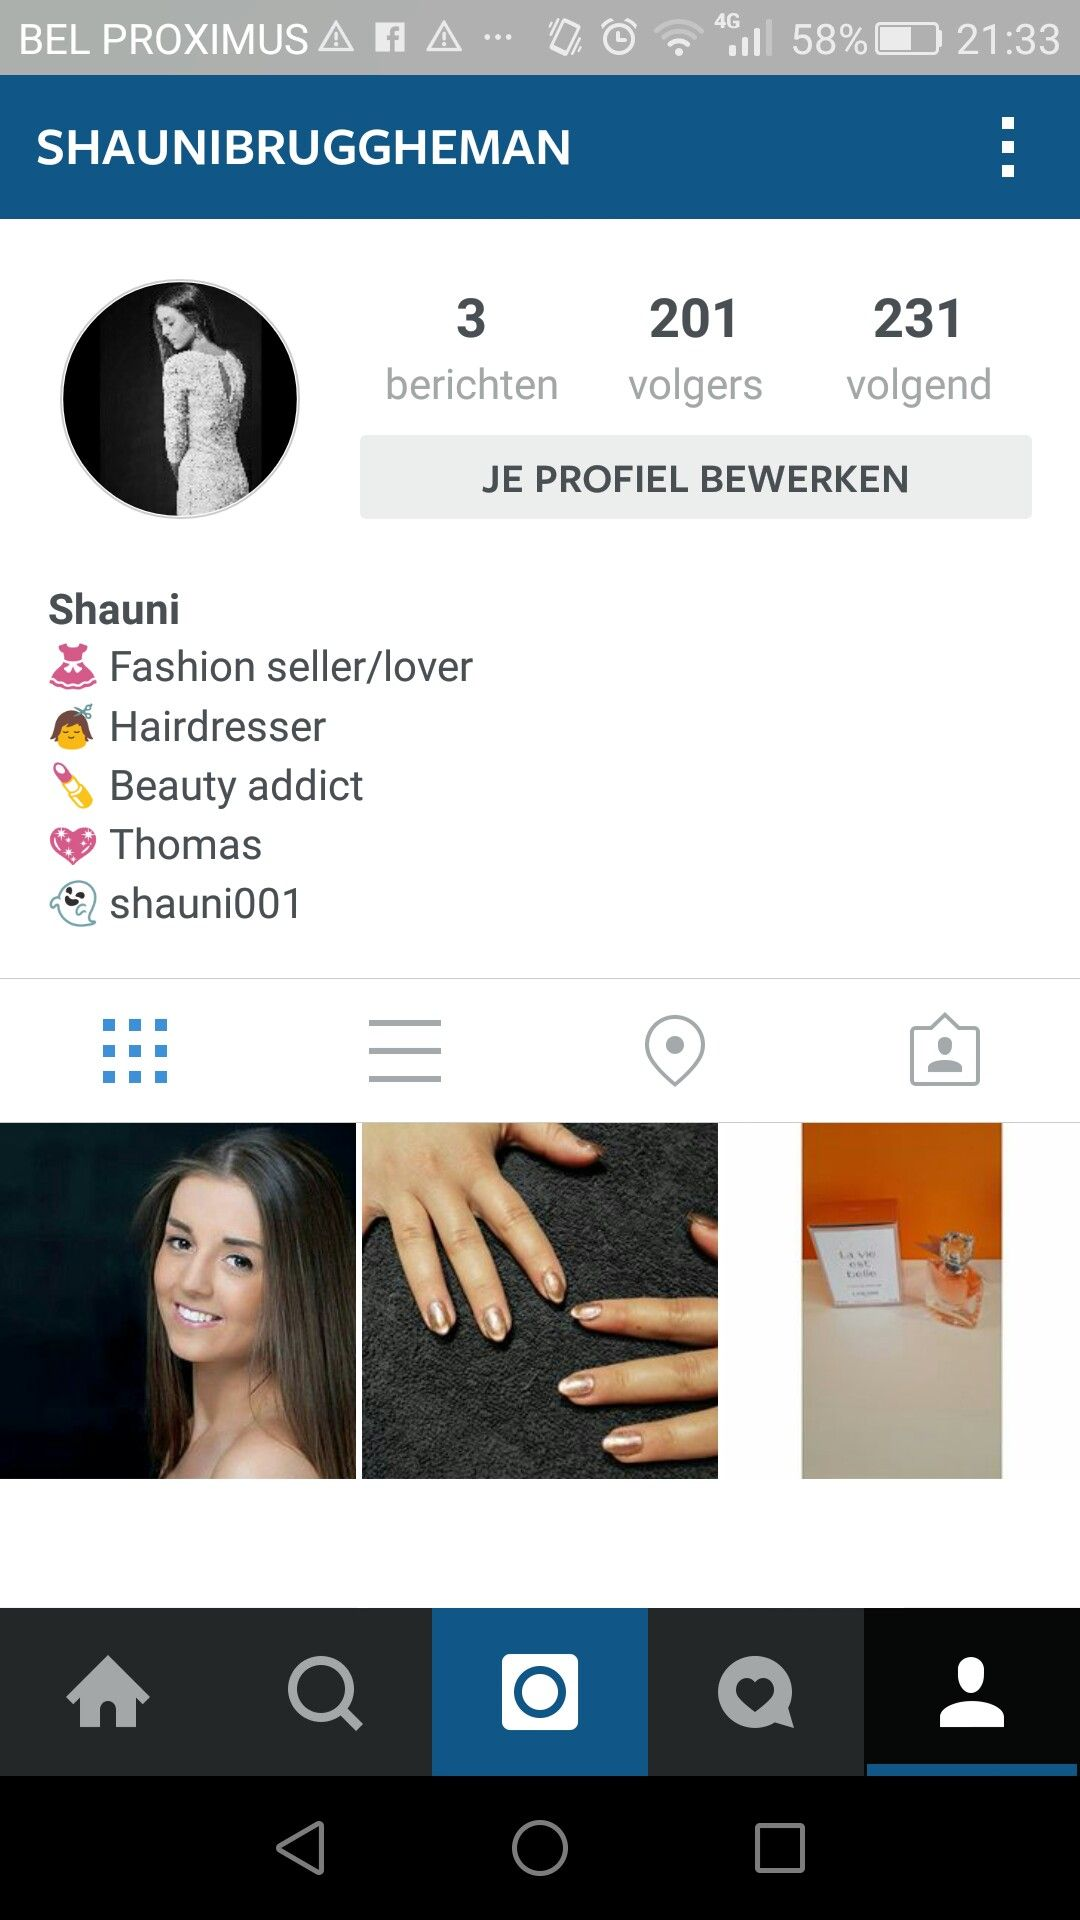 Follow my new insta for fashion, beauty and more! Help me get followers and likes ✌